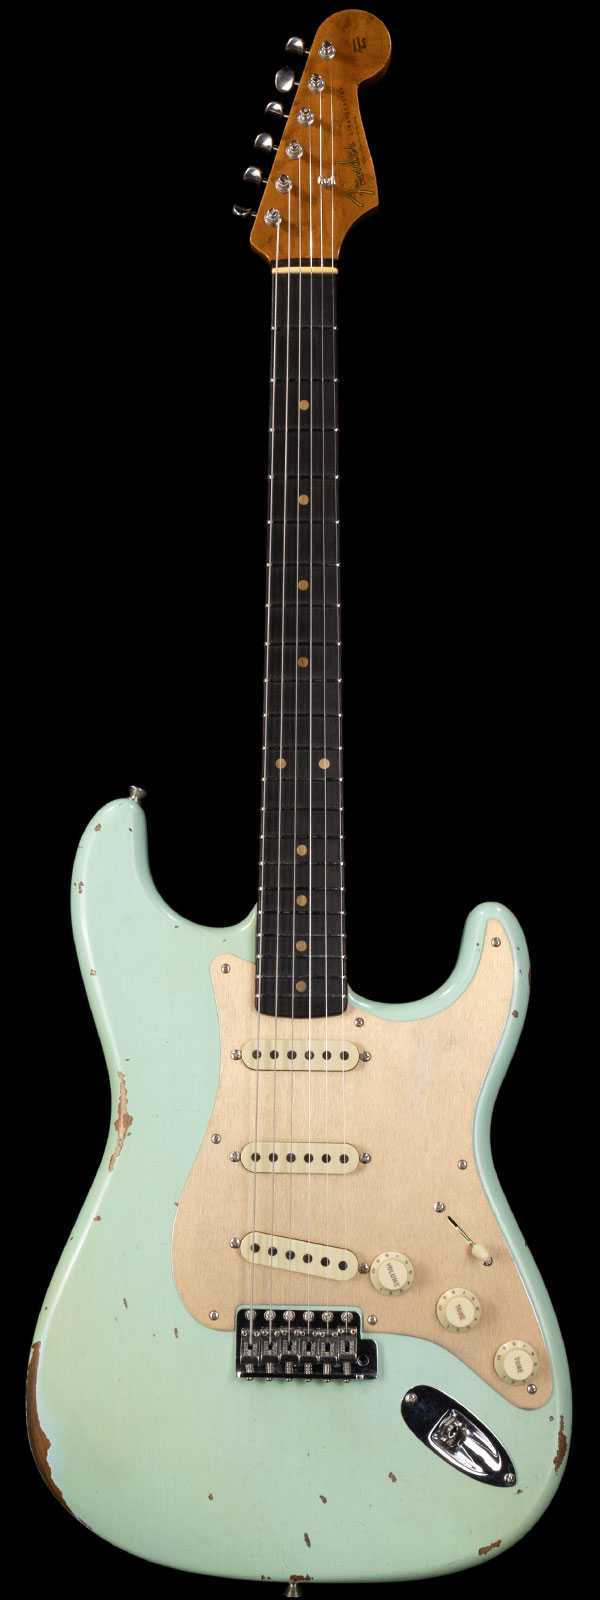 Fender Custom Shop 1960 Strat Roasted Relic Rosewood Board Aged Surf Green